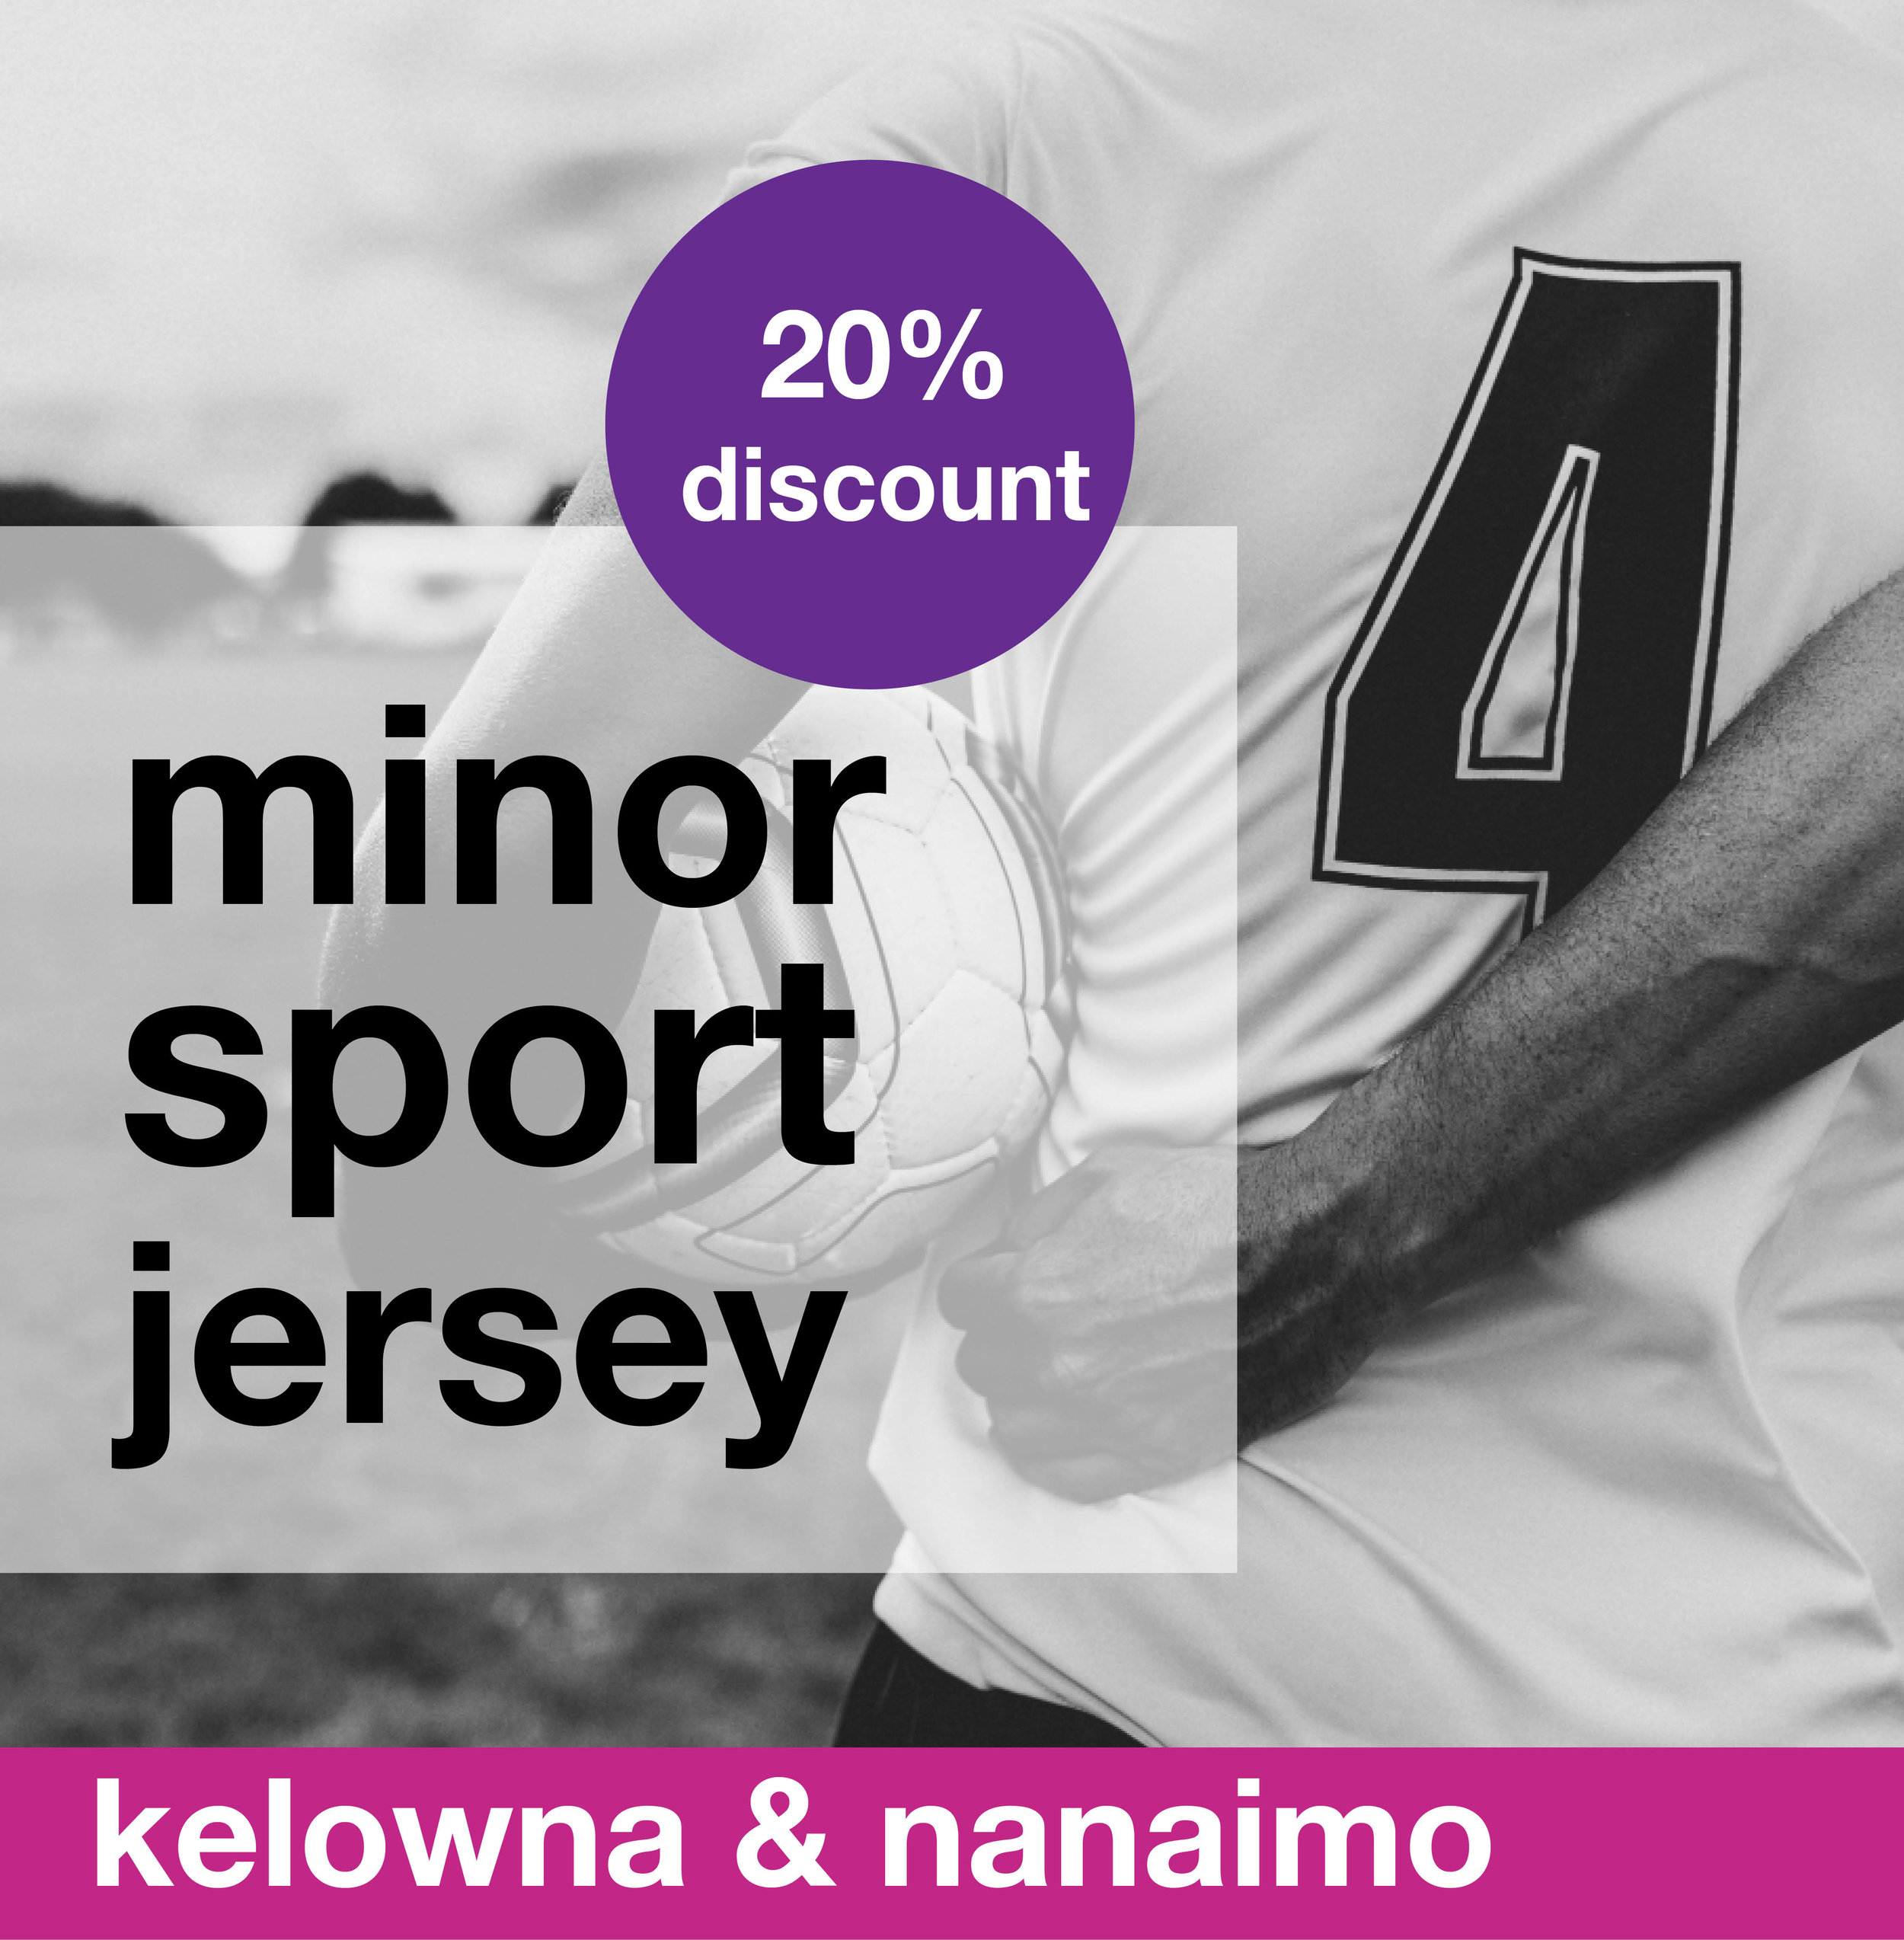 Events Page - Minor sport jersey.jpg